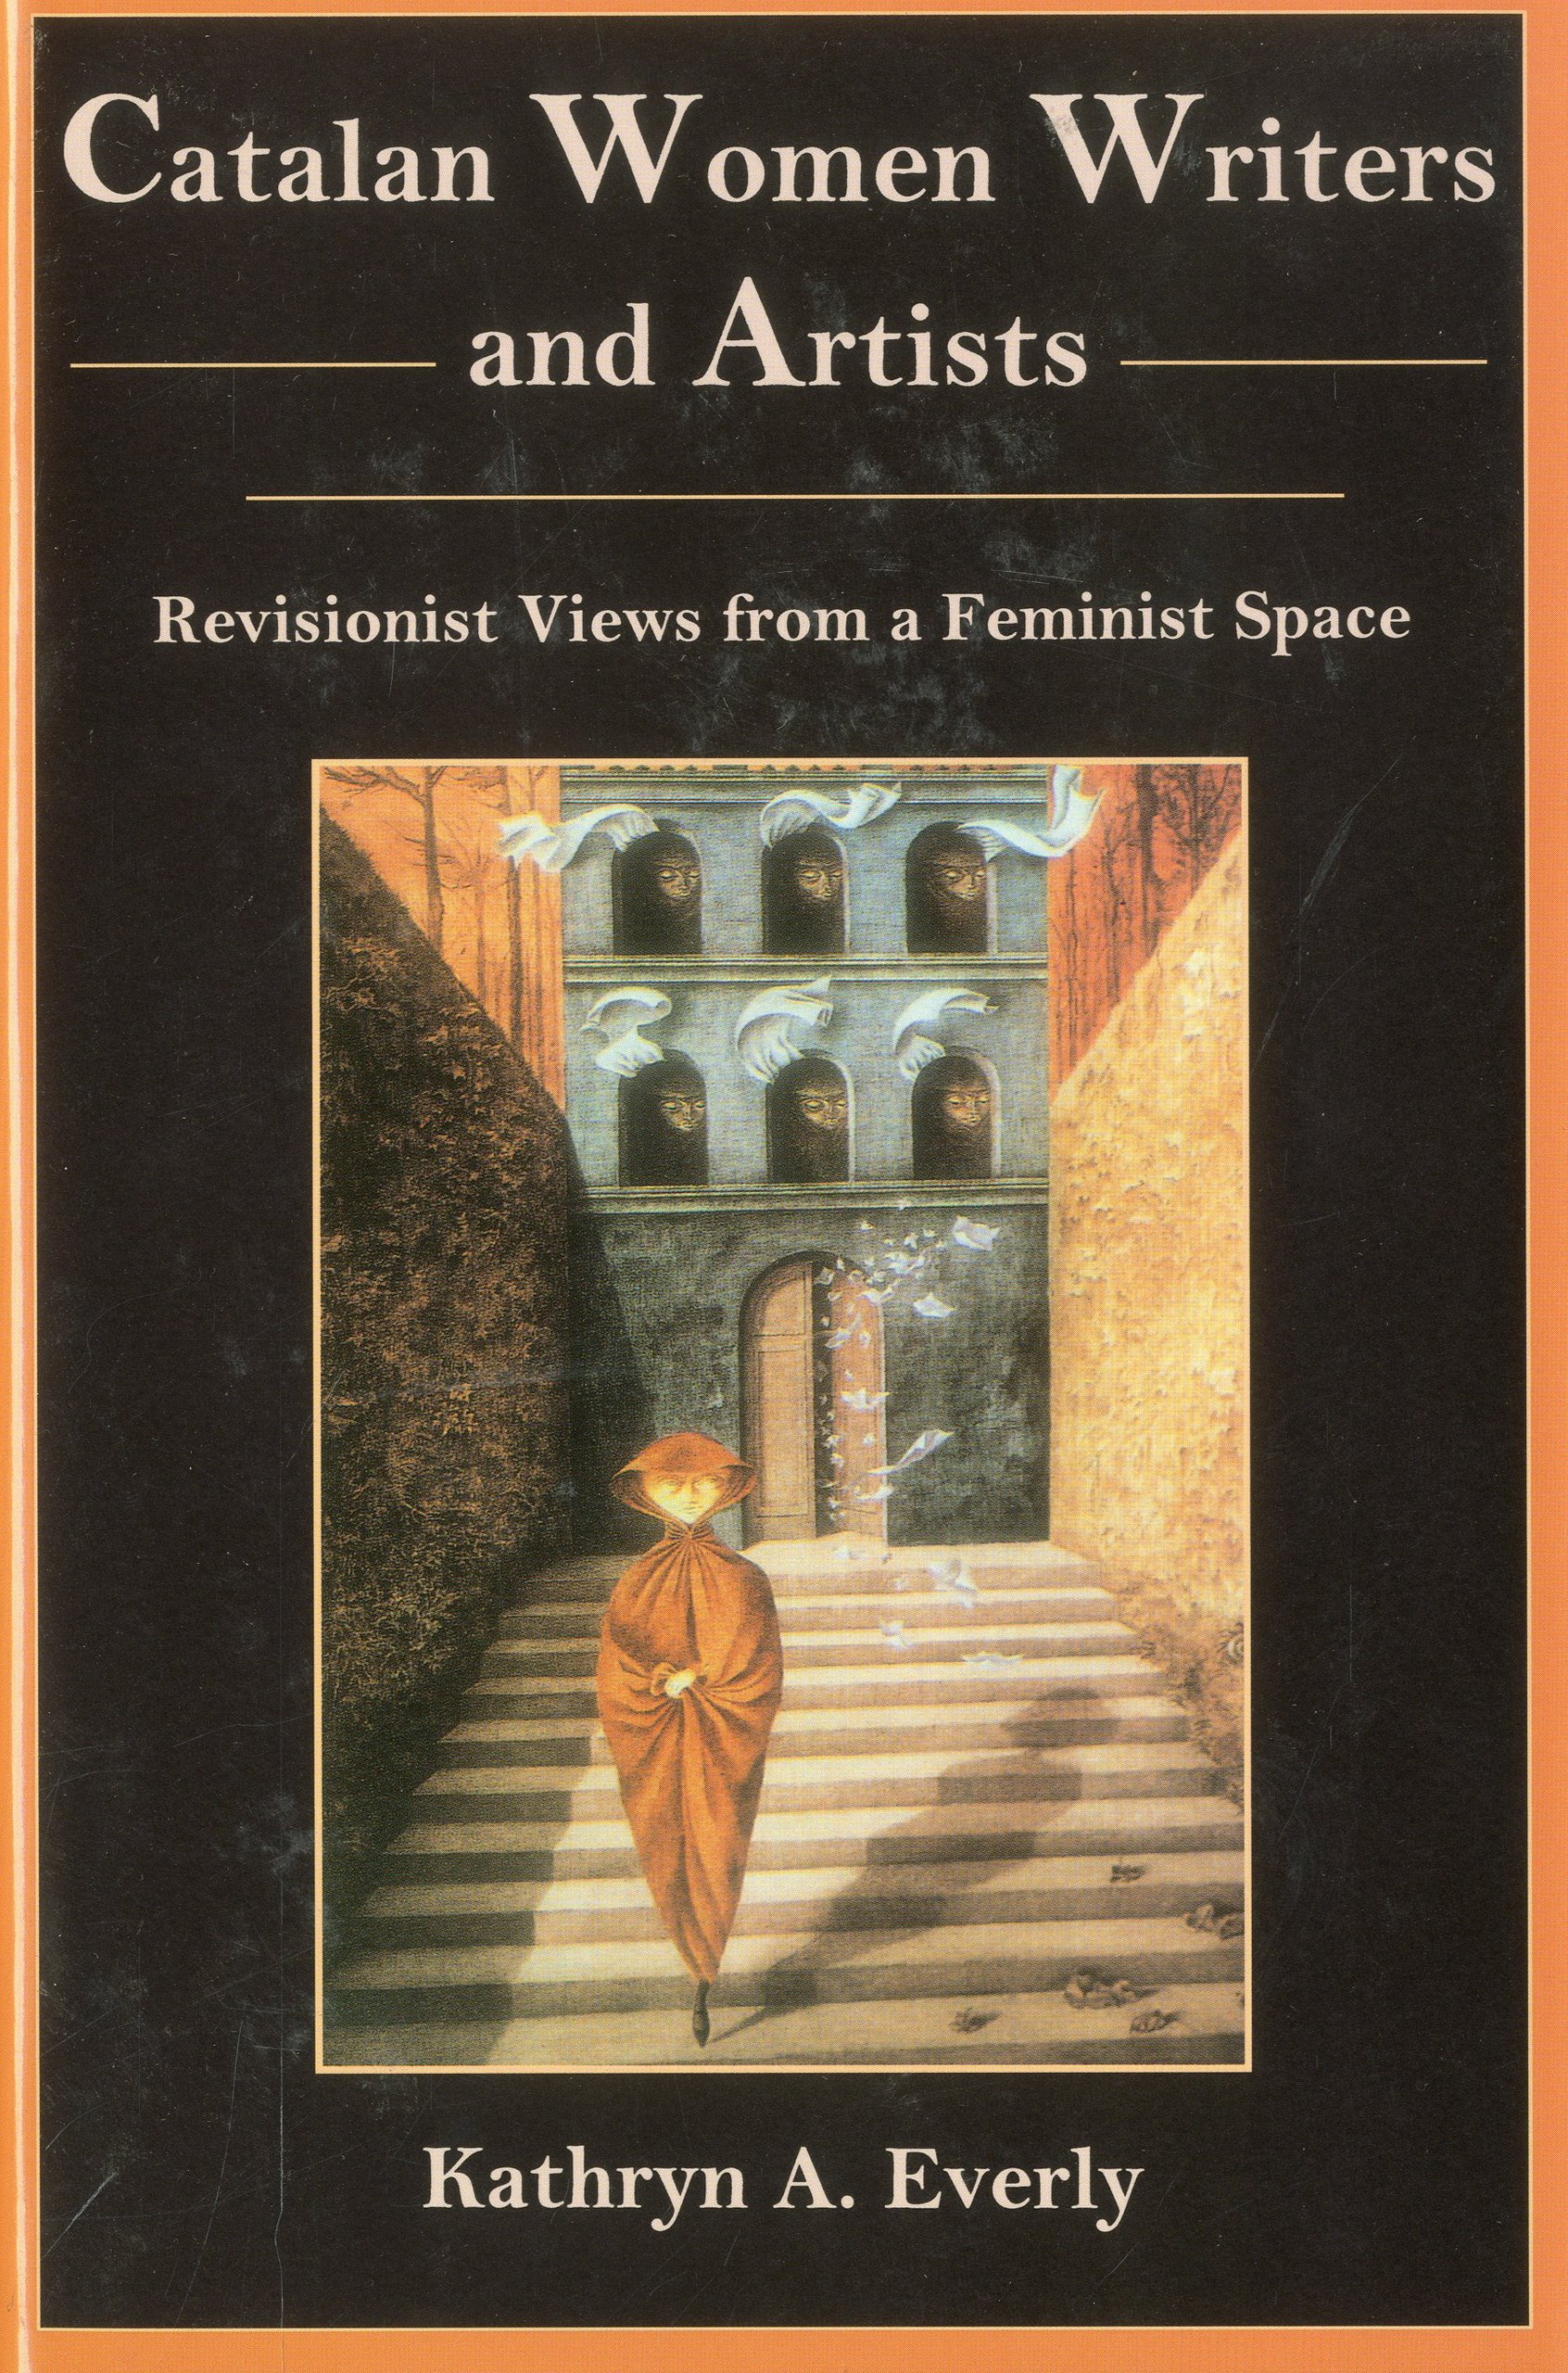 Catalan Women Writers and Artists: Revisionist Views from a Feminist Space